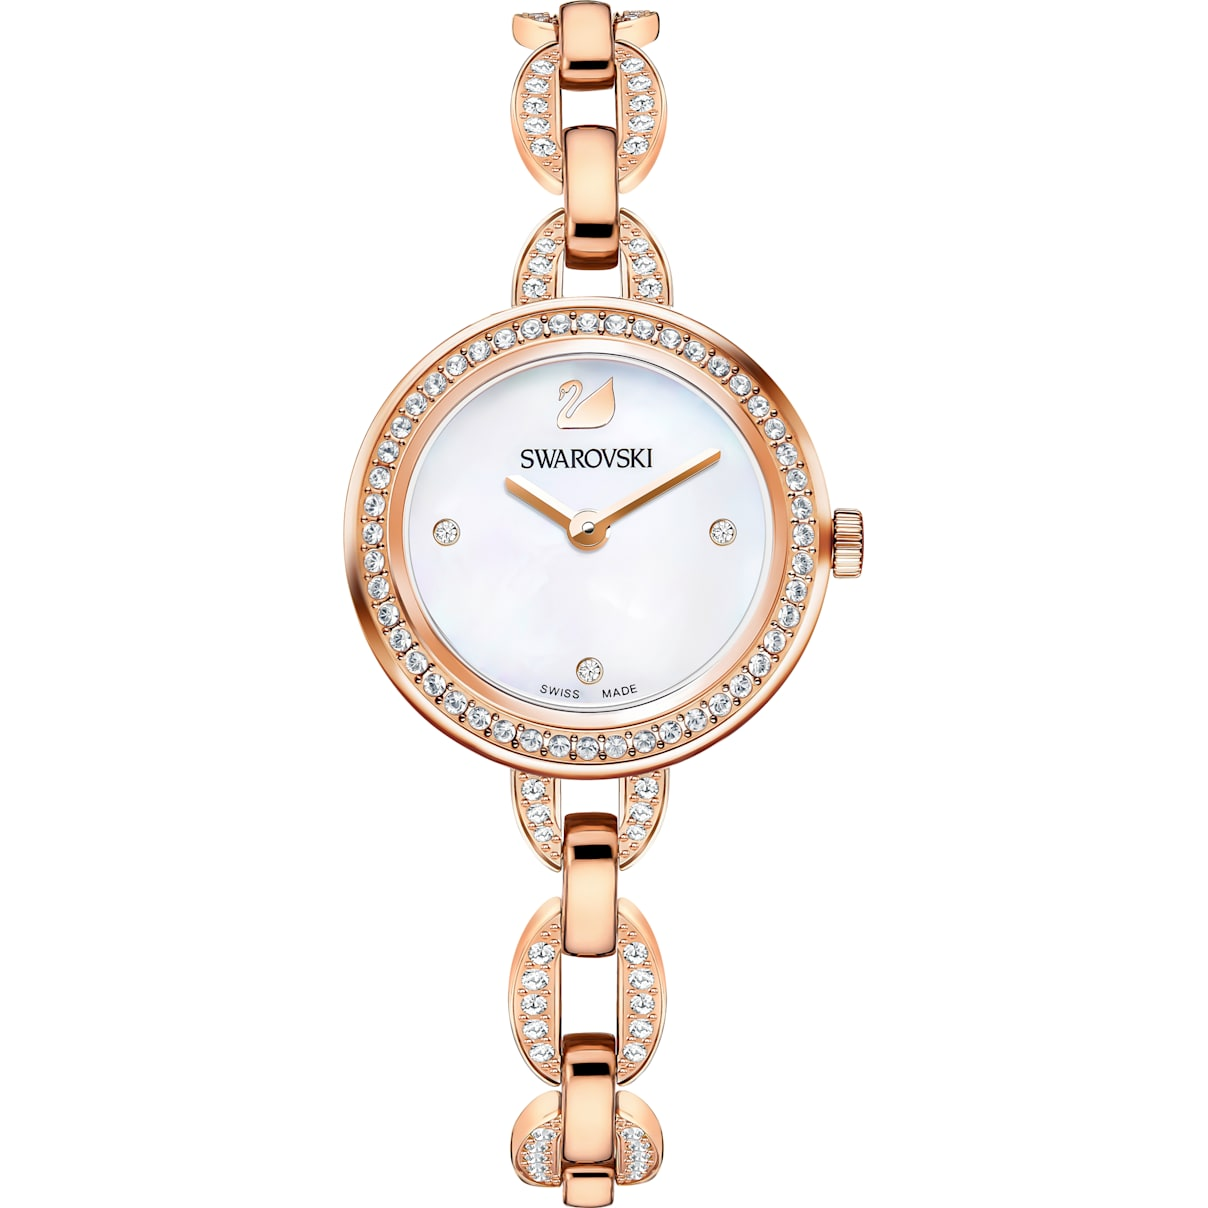 Swarovski Aila Mini Watch, Metal bracelet, Rose-gold tone PVD